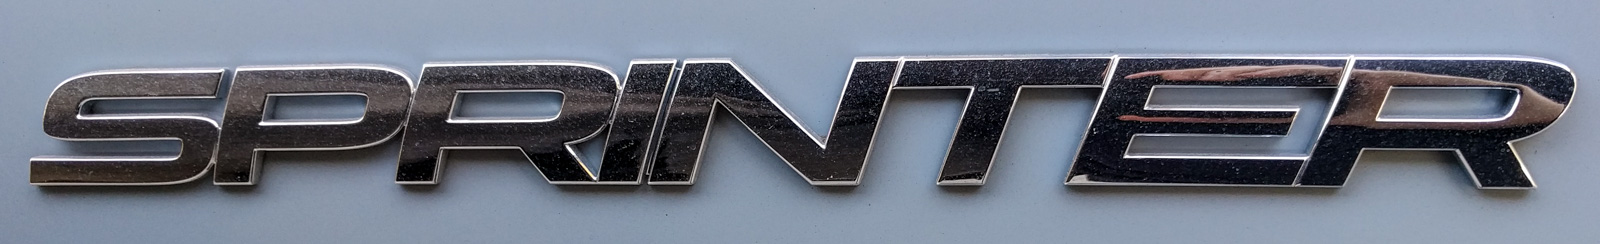 Sprinter rear door badge